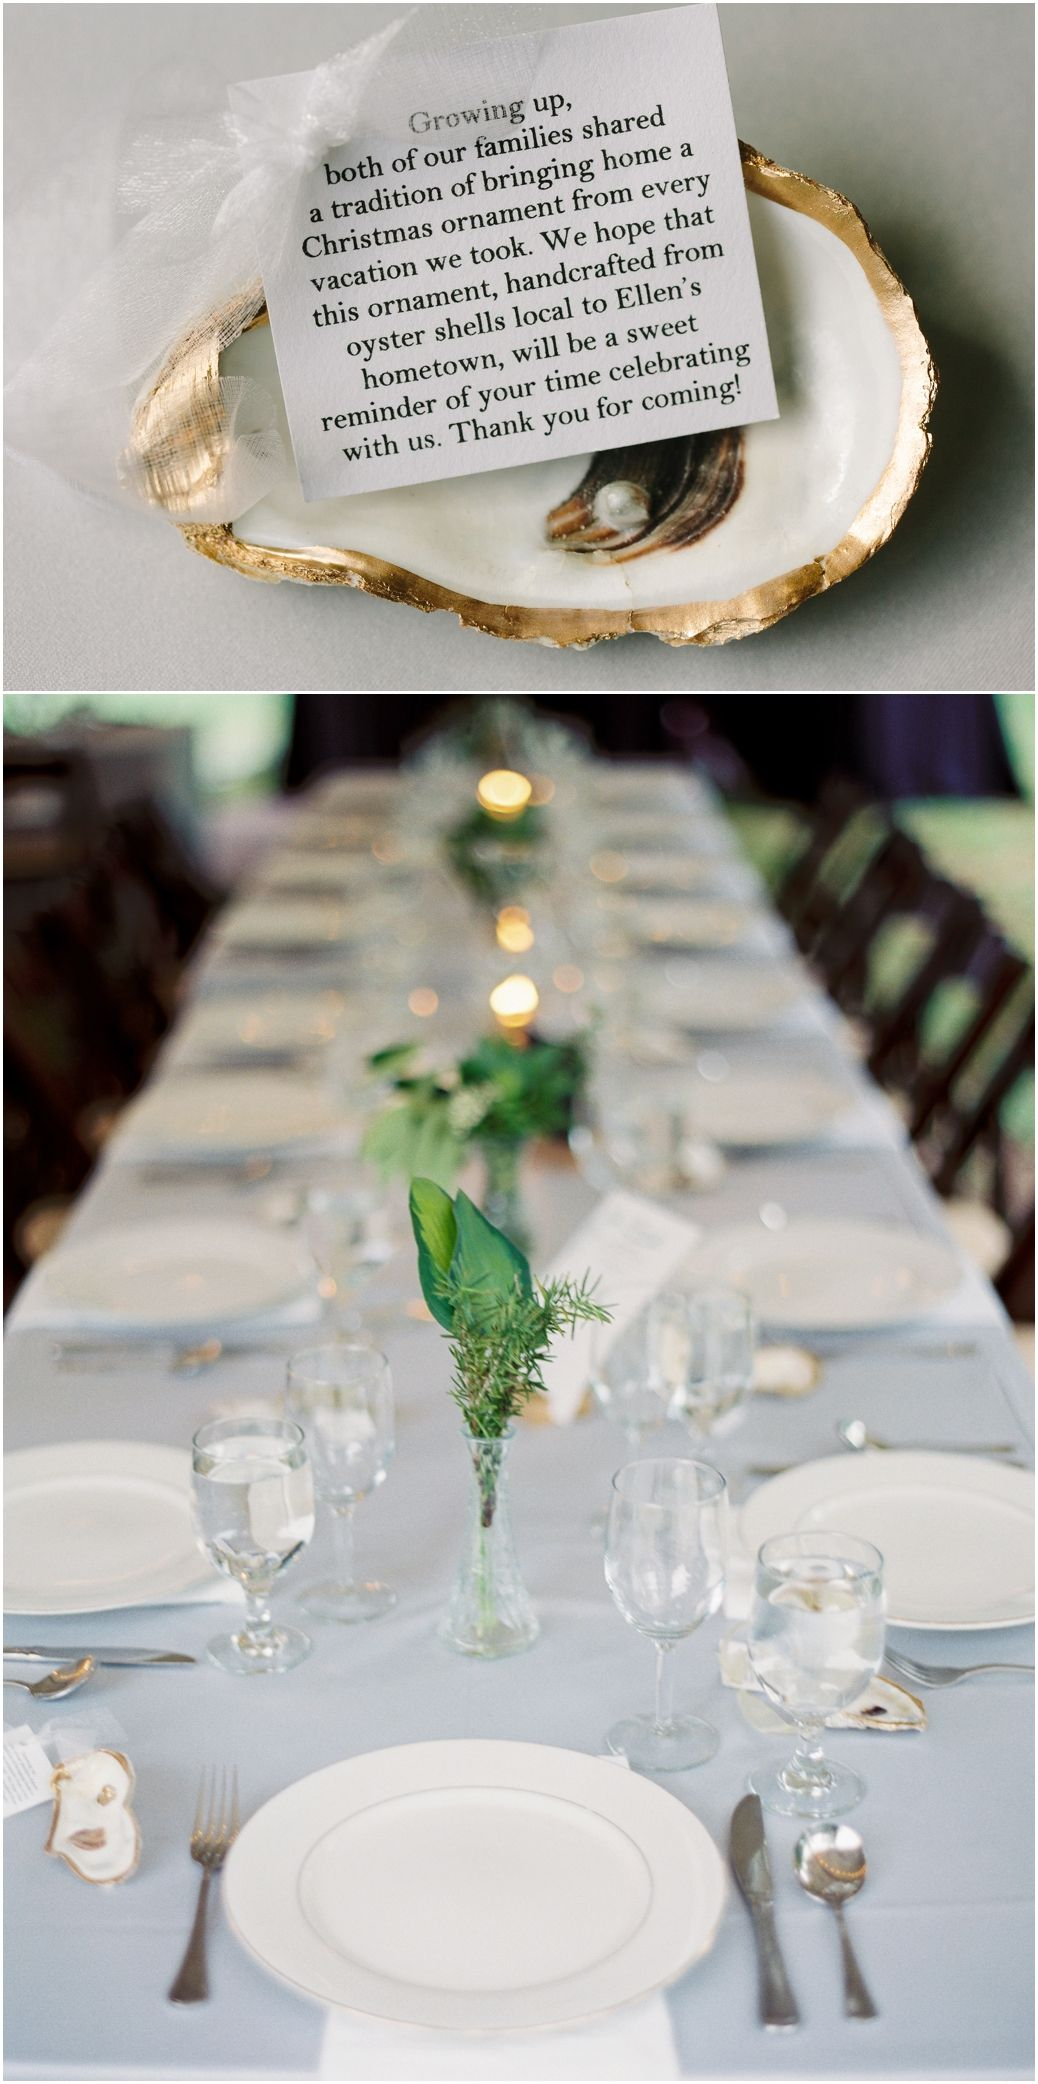 Wedding Favor Idea - Oyster Shell Ornaments With